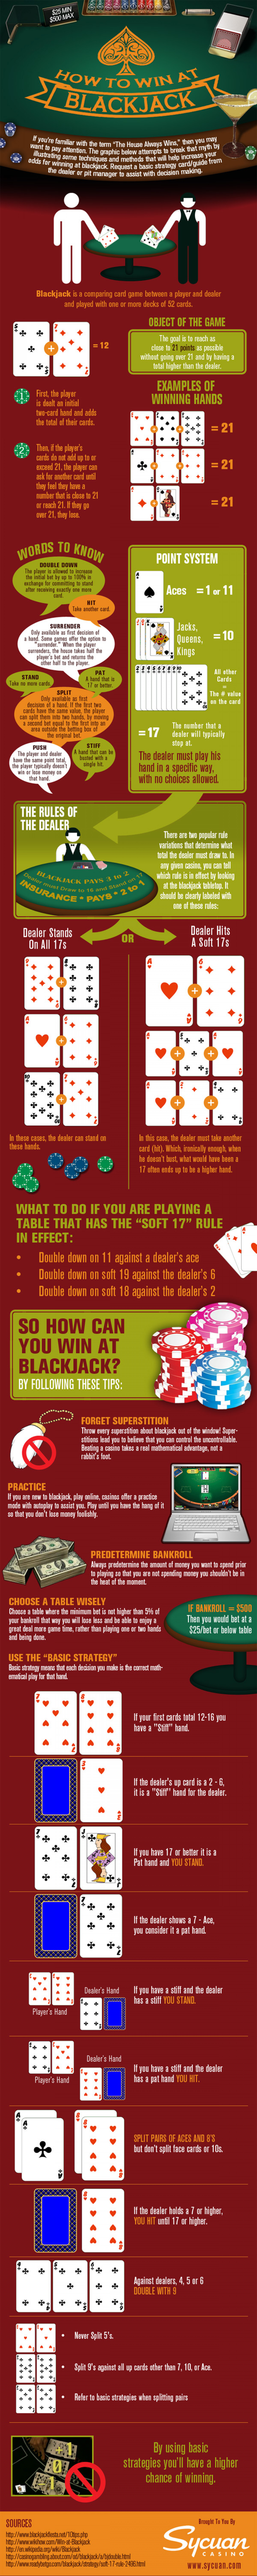 How to Win at Blackjack Infographic